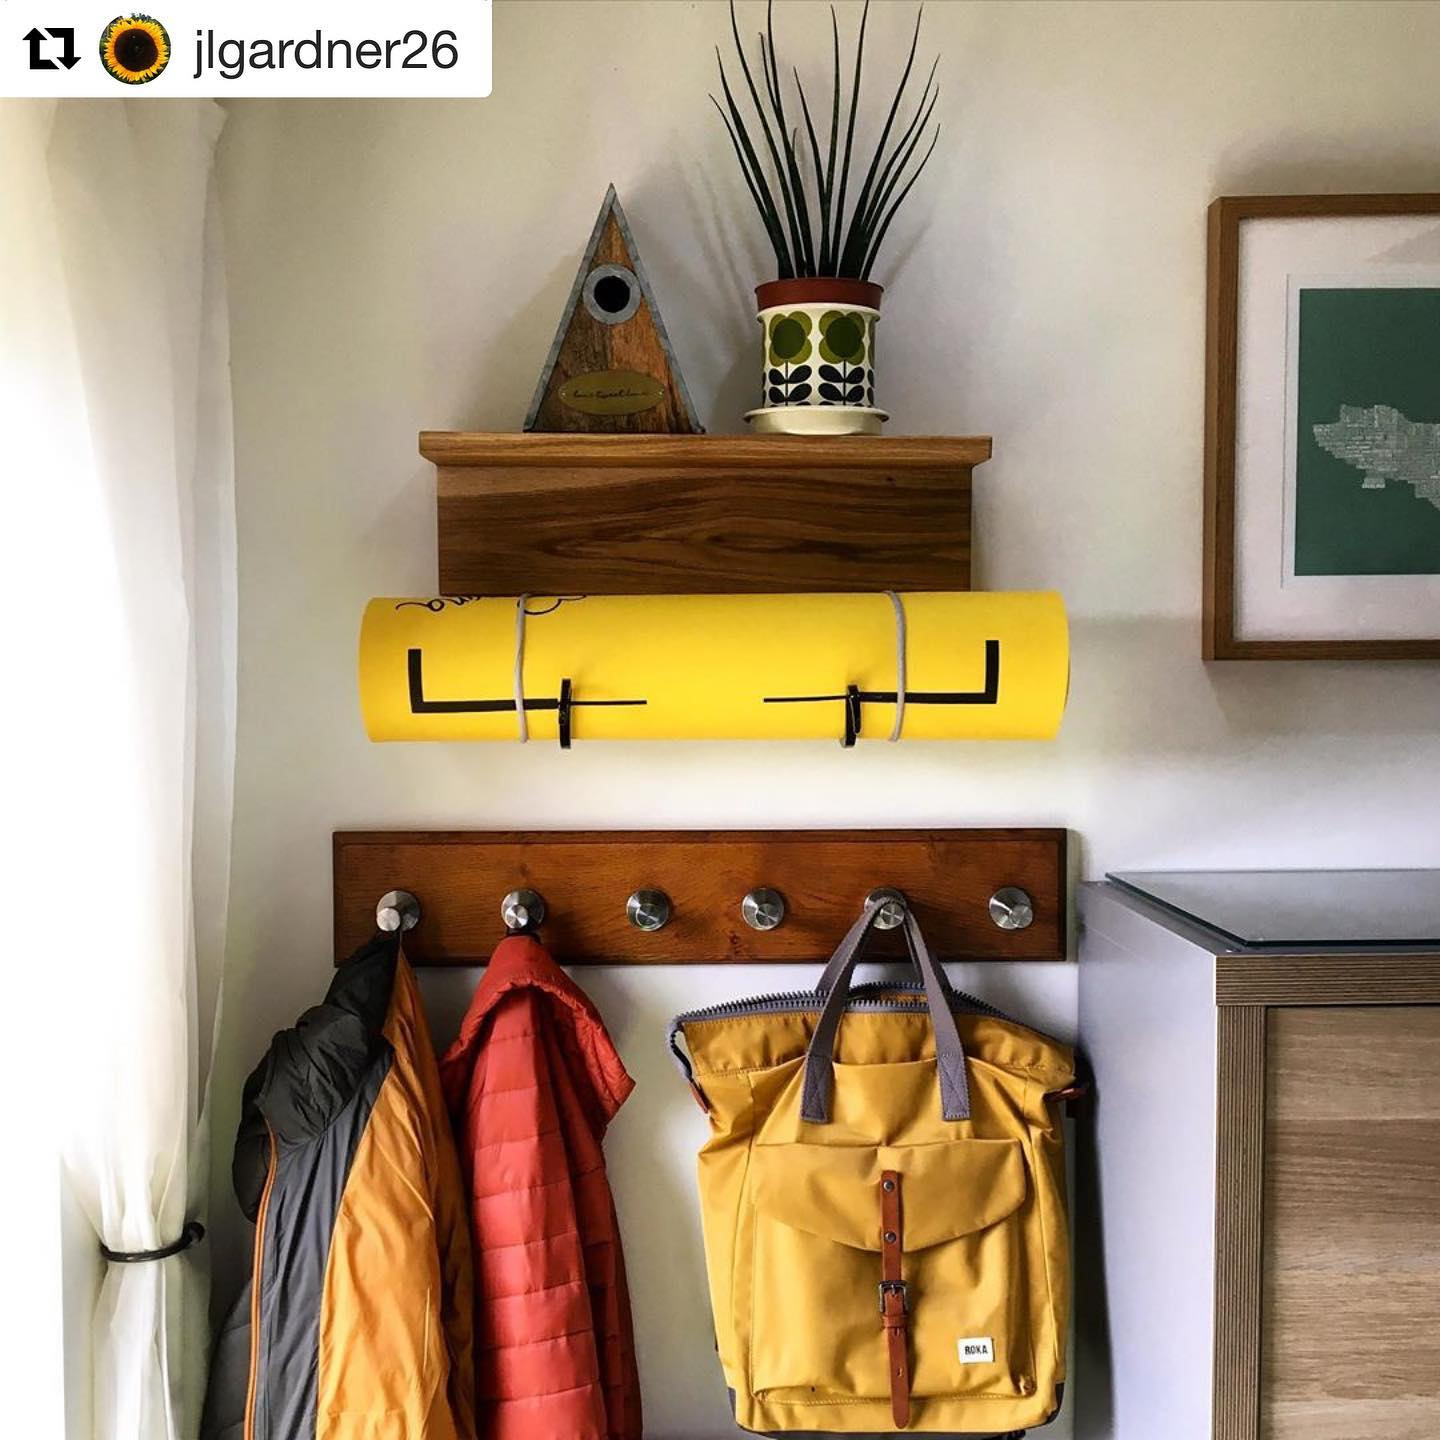 So lovely to see photos of our products in use! This yoga hook shelf works so well in this space 🏻 .#Repost @jlgardner26 with @get_repost・・・Absolutely loving my yoga mat storage oak shelf xxx🧡 .Thank you to the lovely @gingerandtweed  #oak #wood #shelf #handmade #yoga #yogainspiration #yogainstagram #yogamat #orlakiely #orlakielyplantpot #roka #rucksack #birdhouse #birdbox thankyou @dianeprescott1959